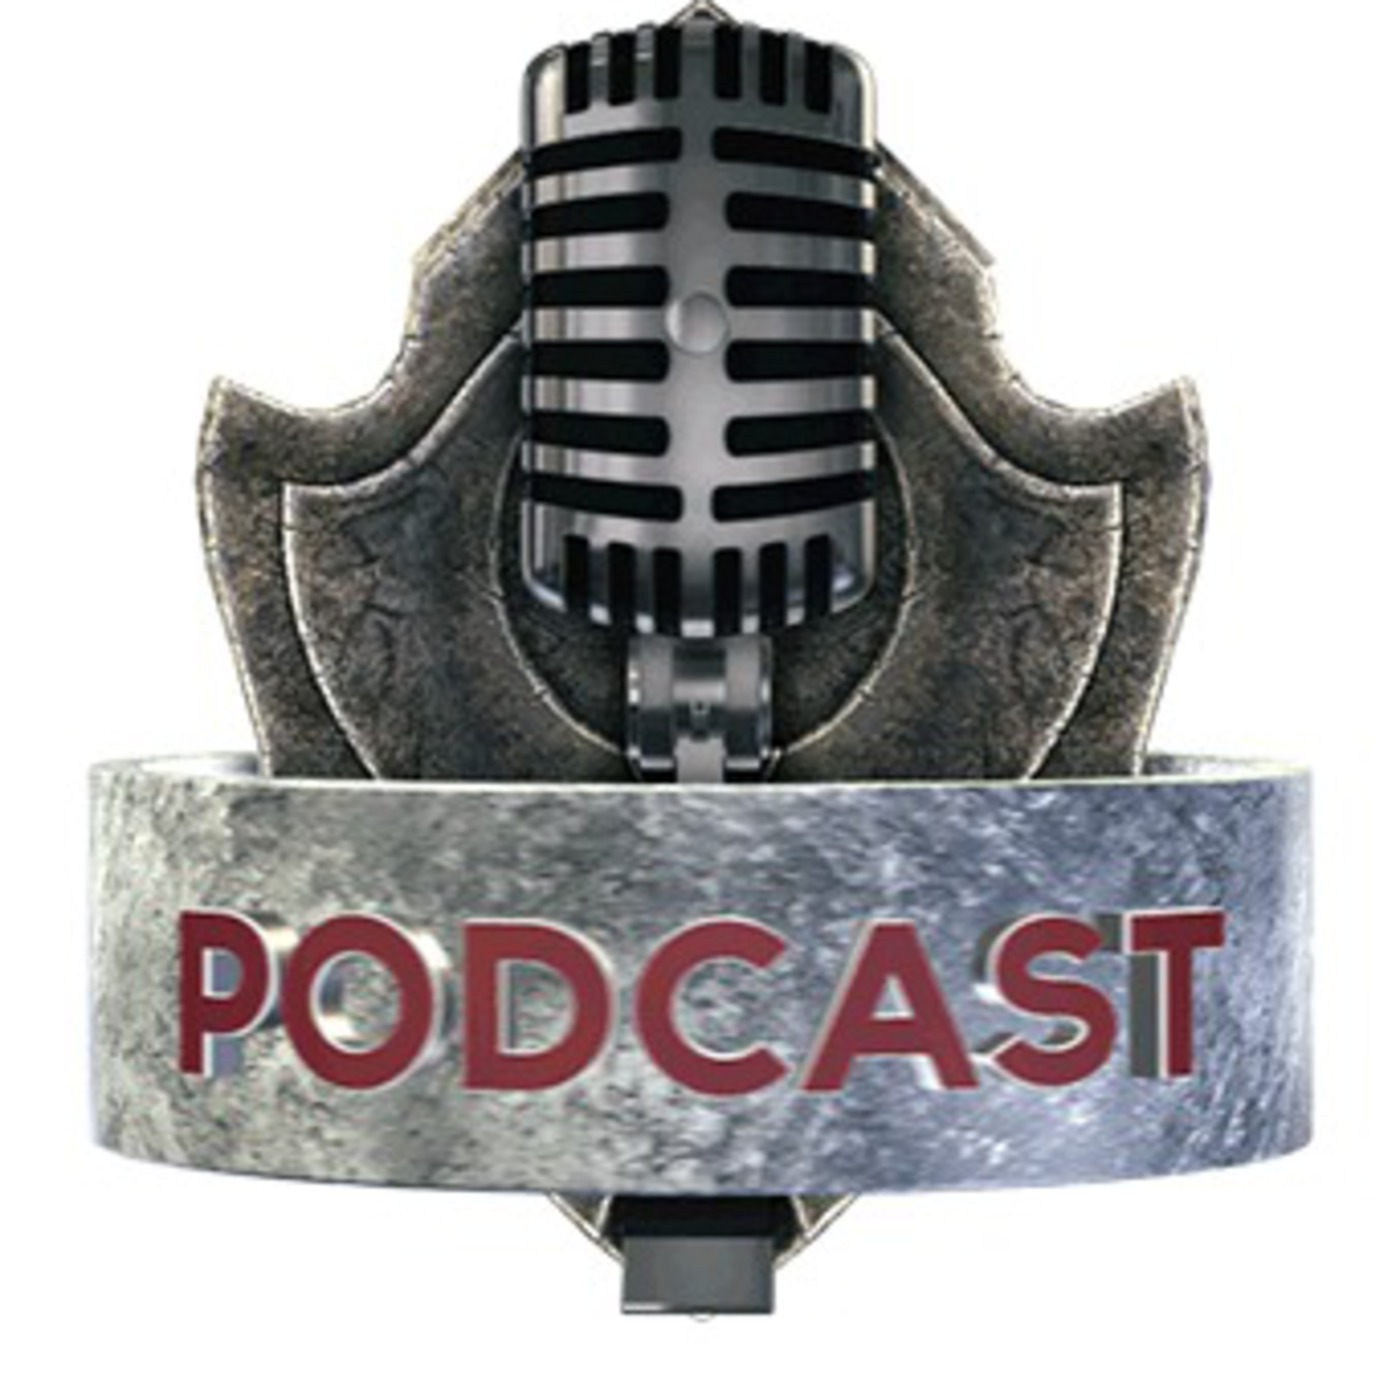 The Real Episode 6 - By The Numbers! TESO Elite Podcast: For All